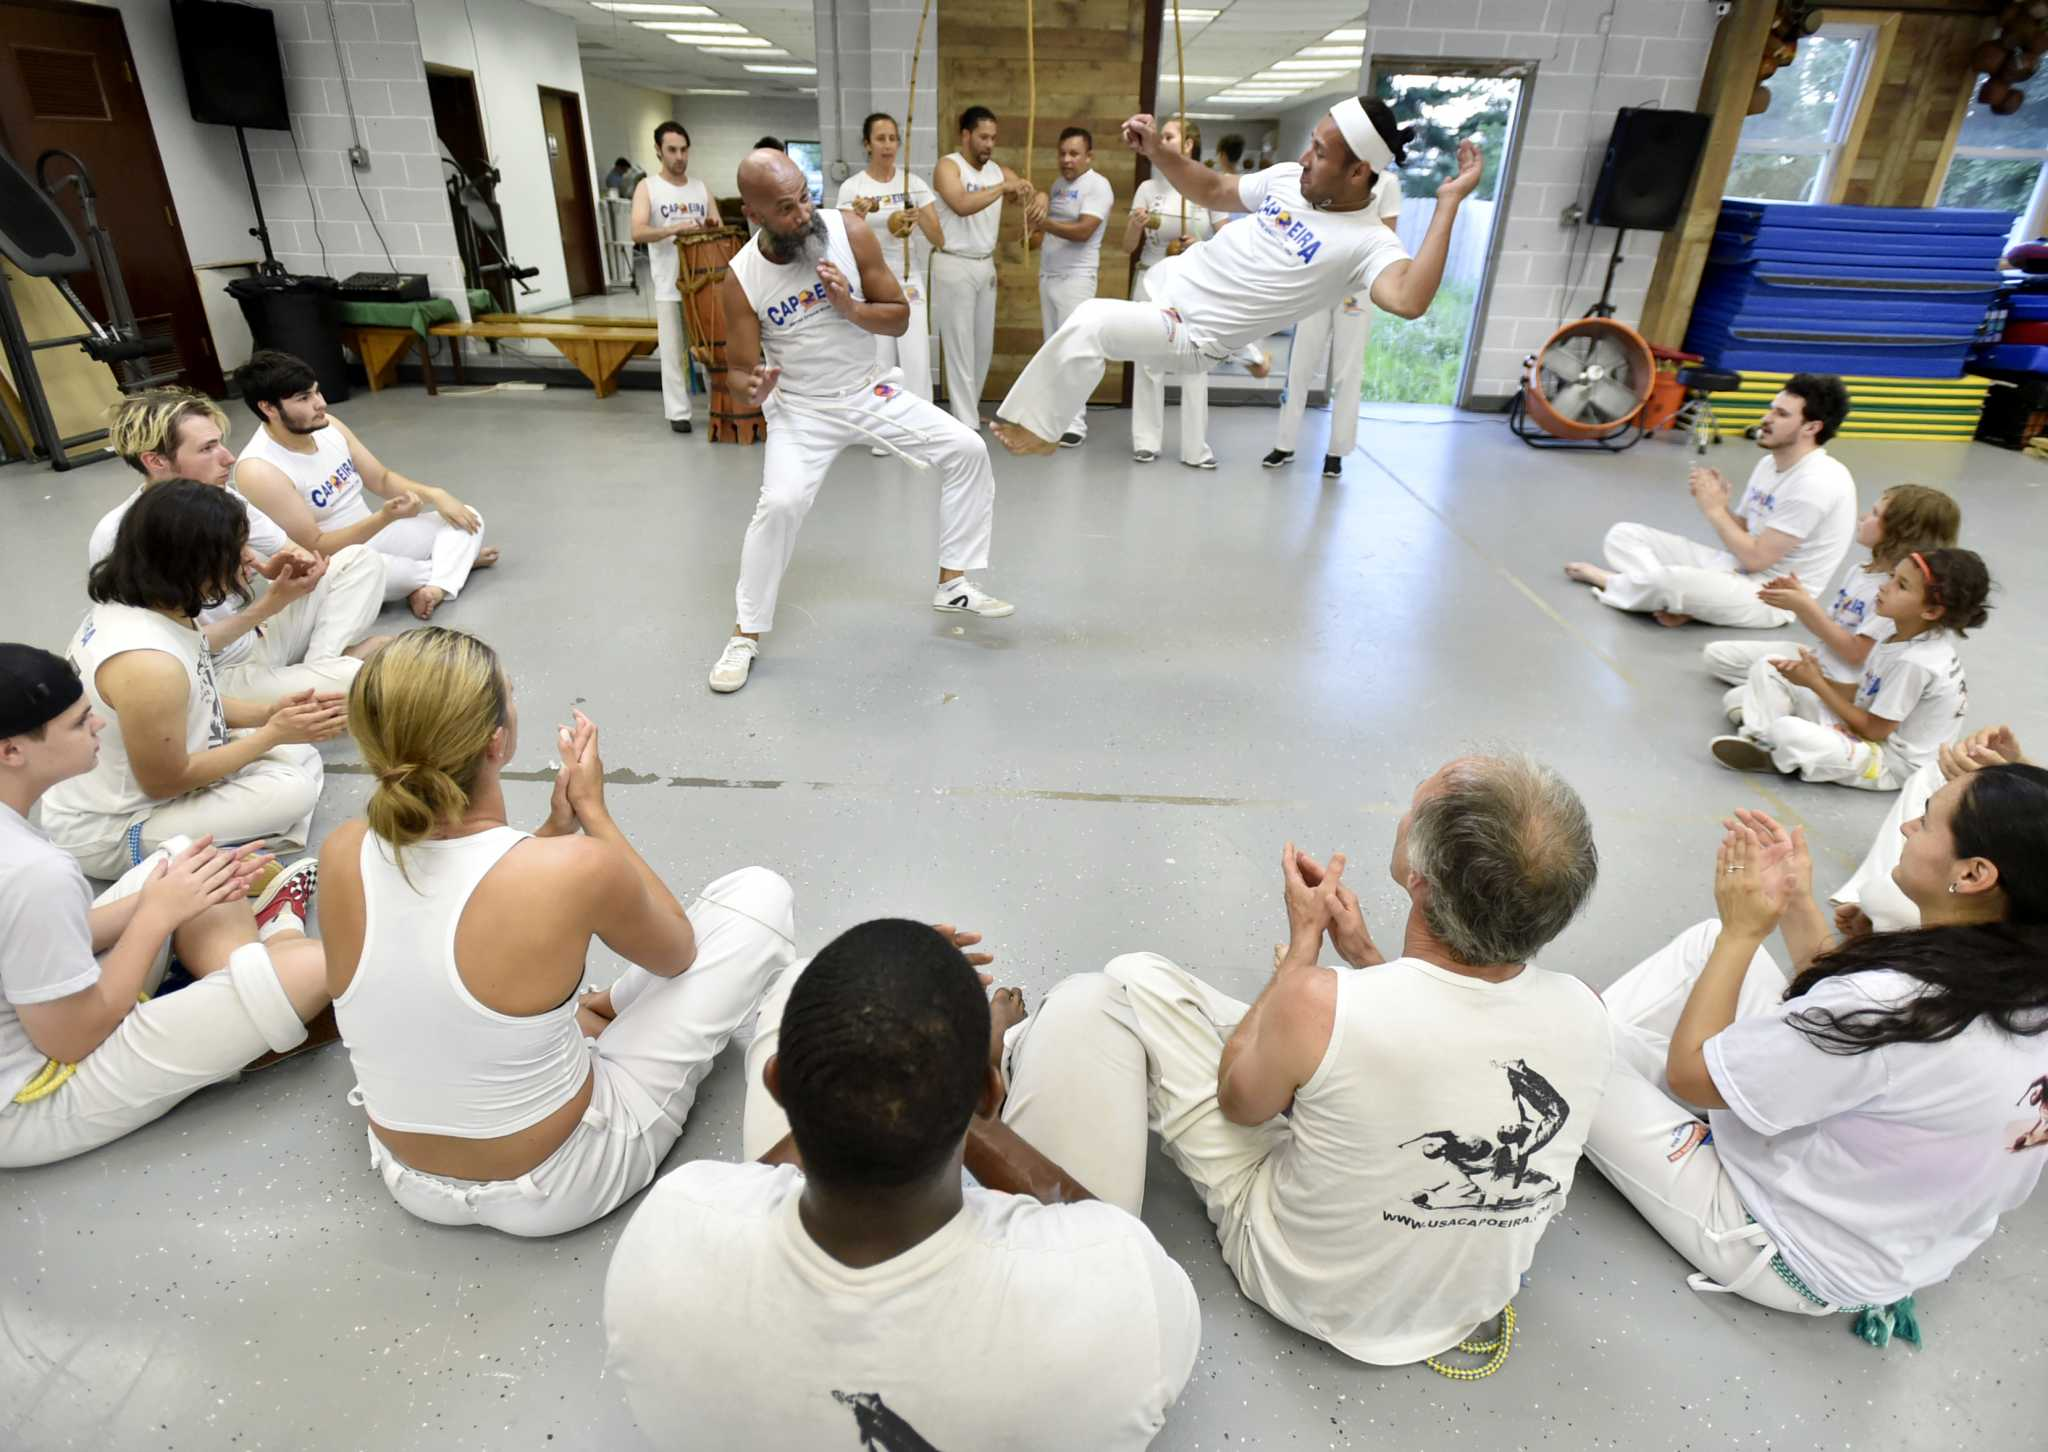 In photos: Connecticut Capoeira & Dance Center in New Haven